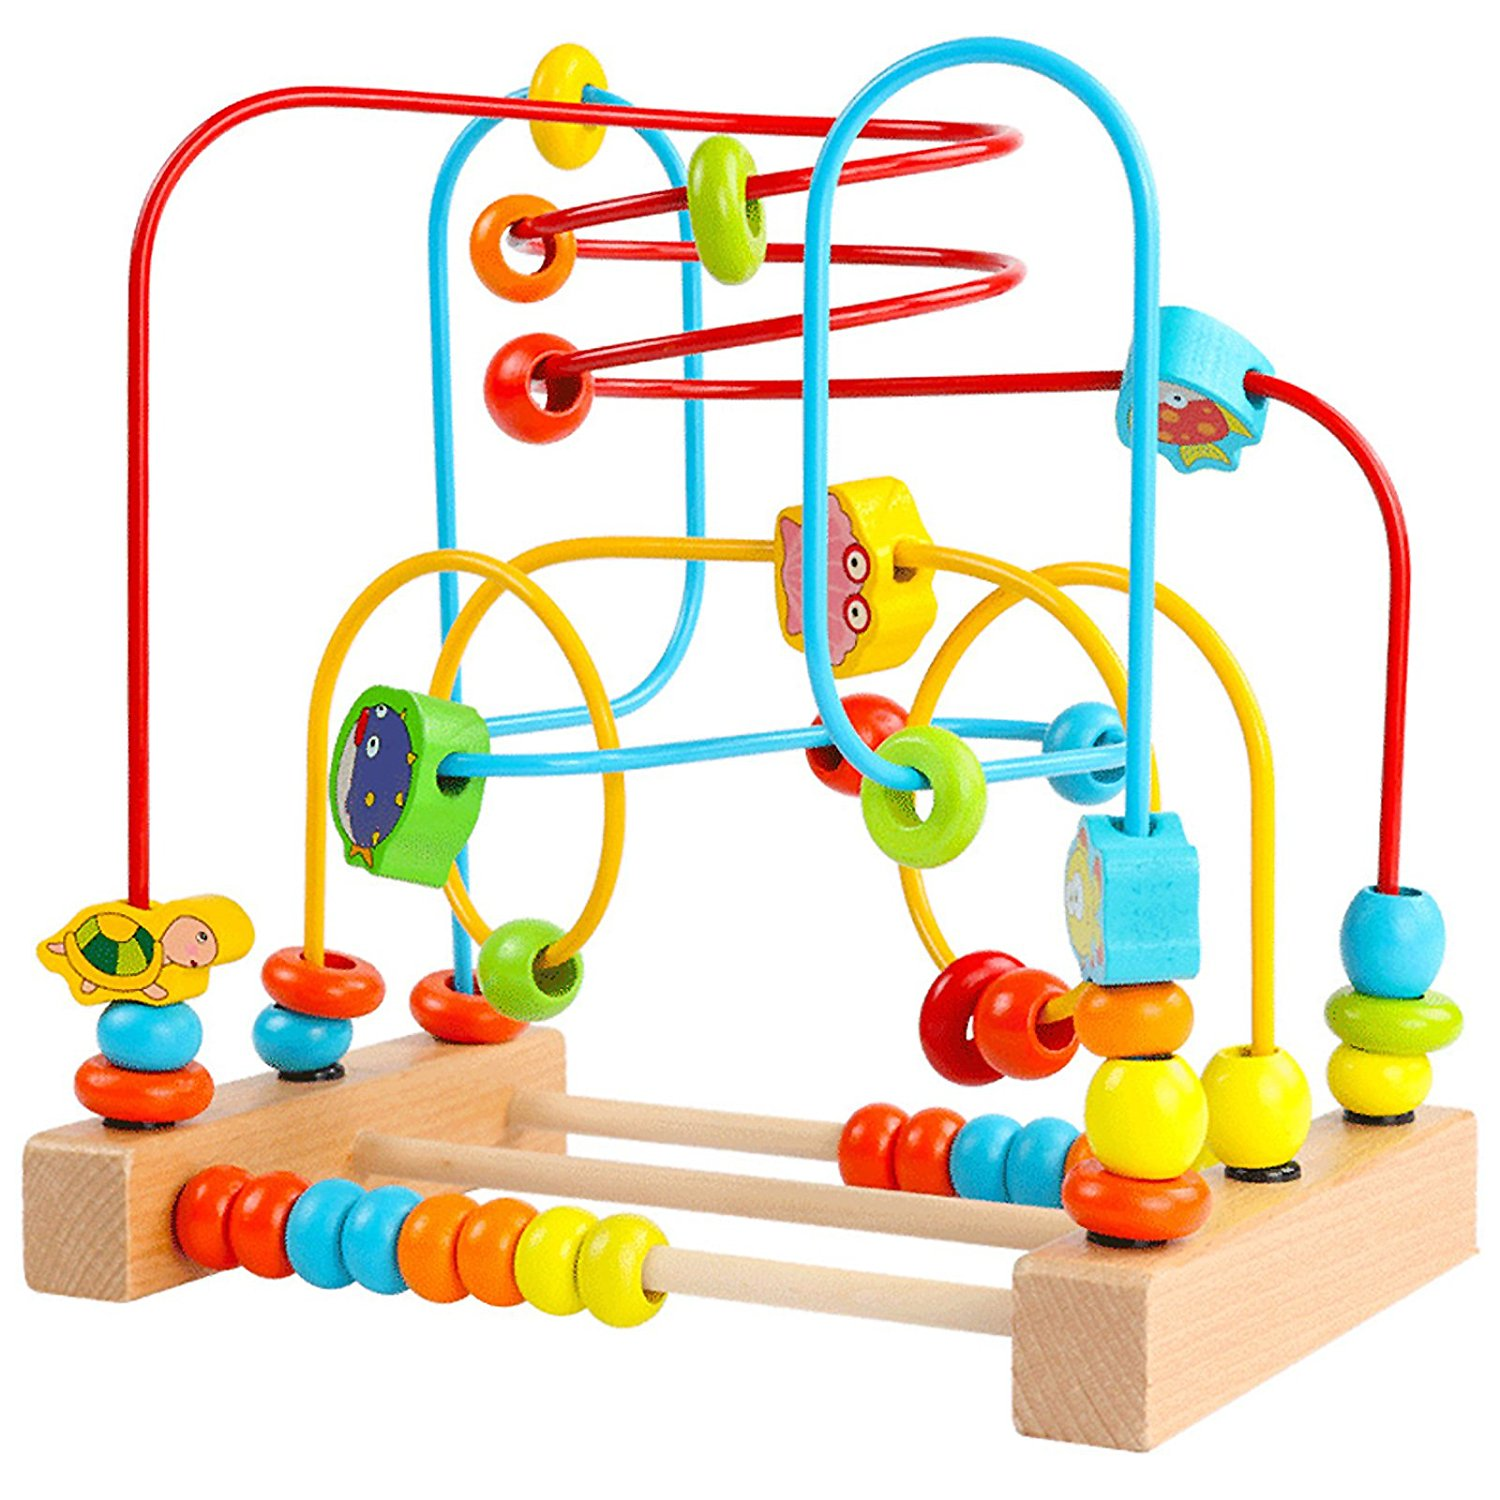 Timy Bead Maze Roller Coaster Wooden Educational Circle Toy for Toddlers